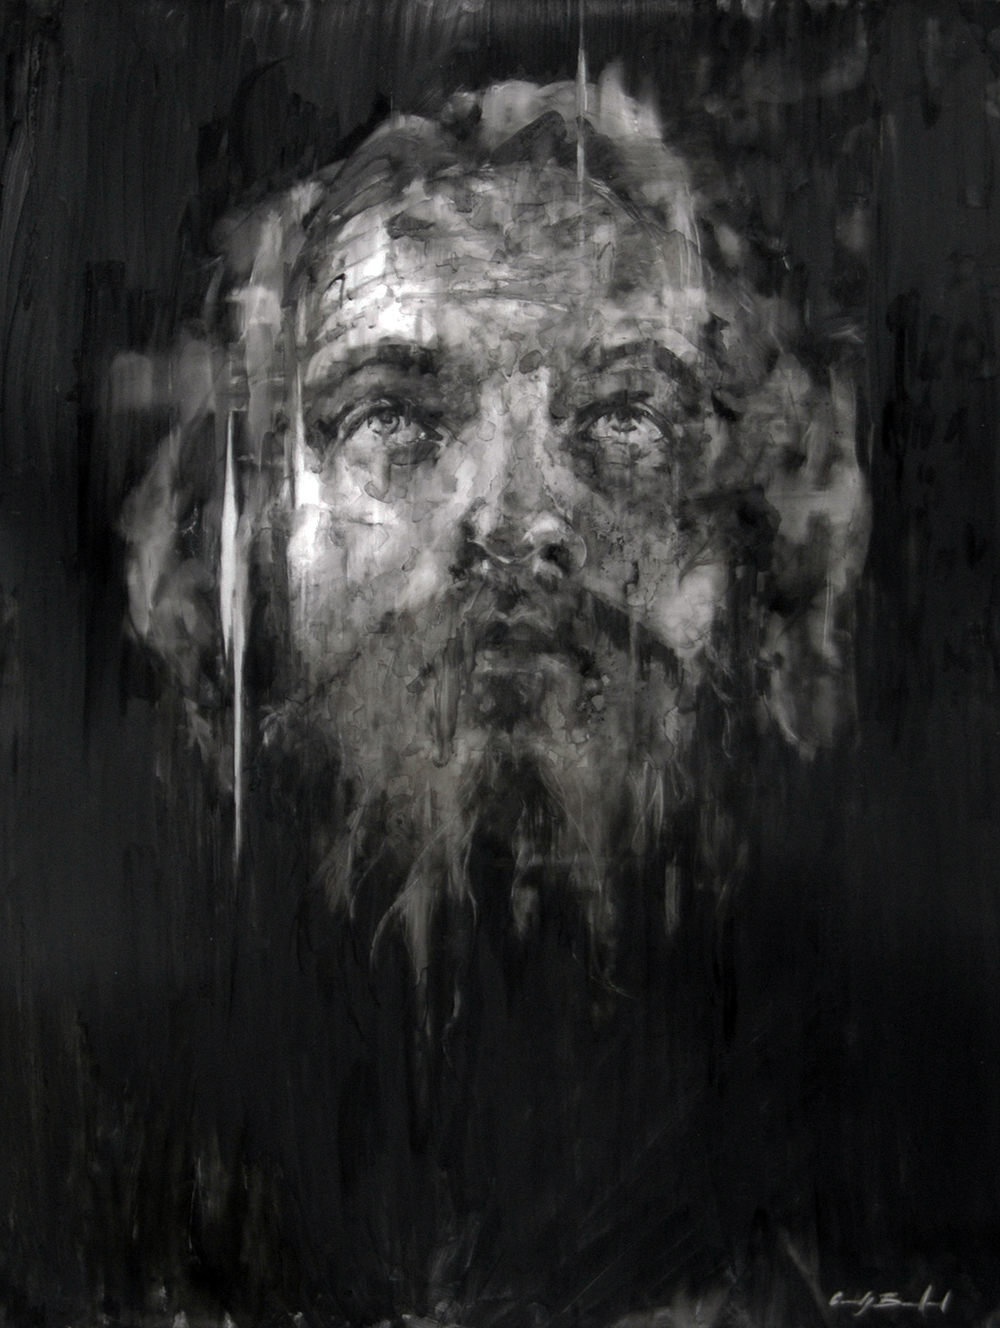 """Stephen"", 2012, charcoal on mylar, 24x18 in."